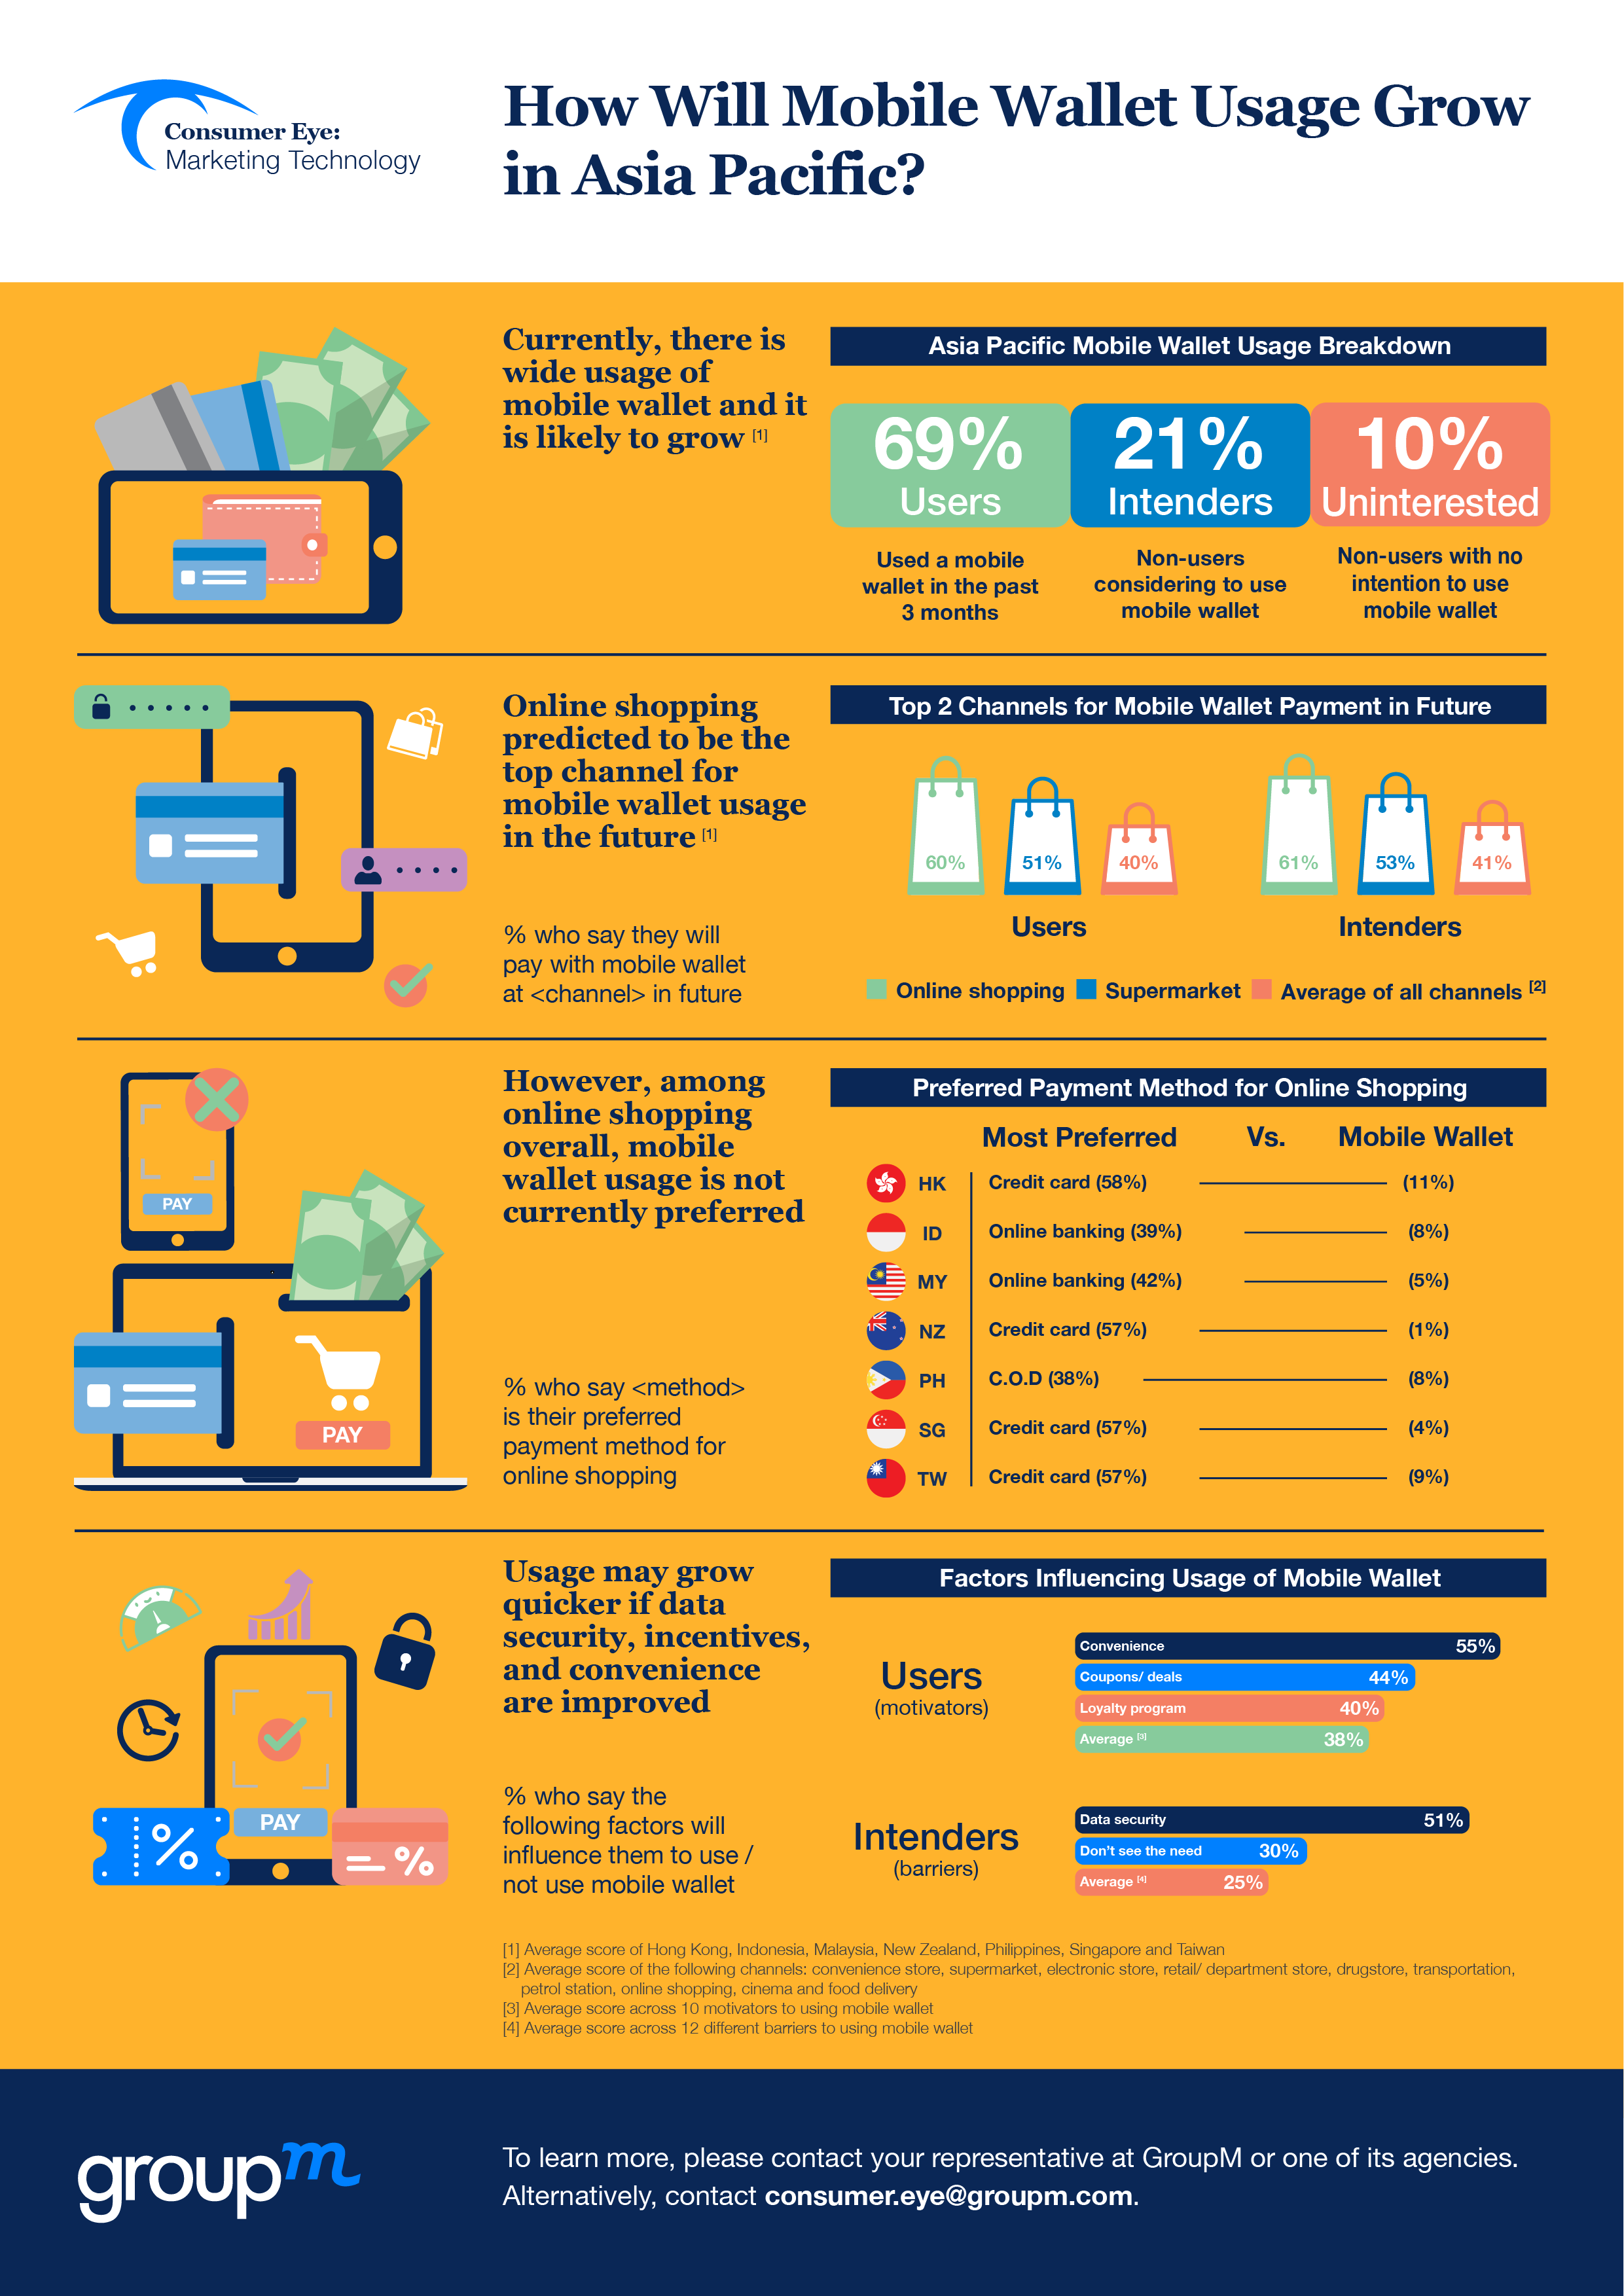 infographic on mobile wallet usage growth in Asia Pacific